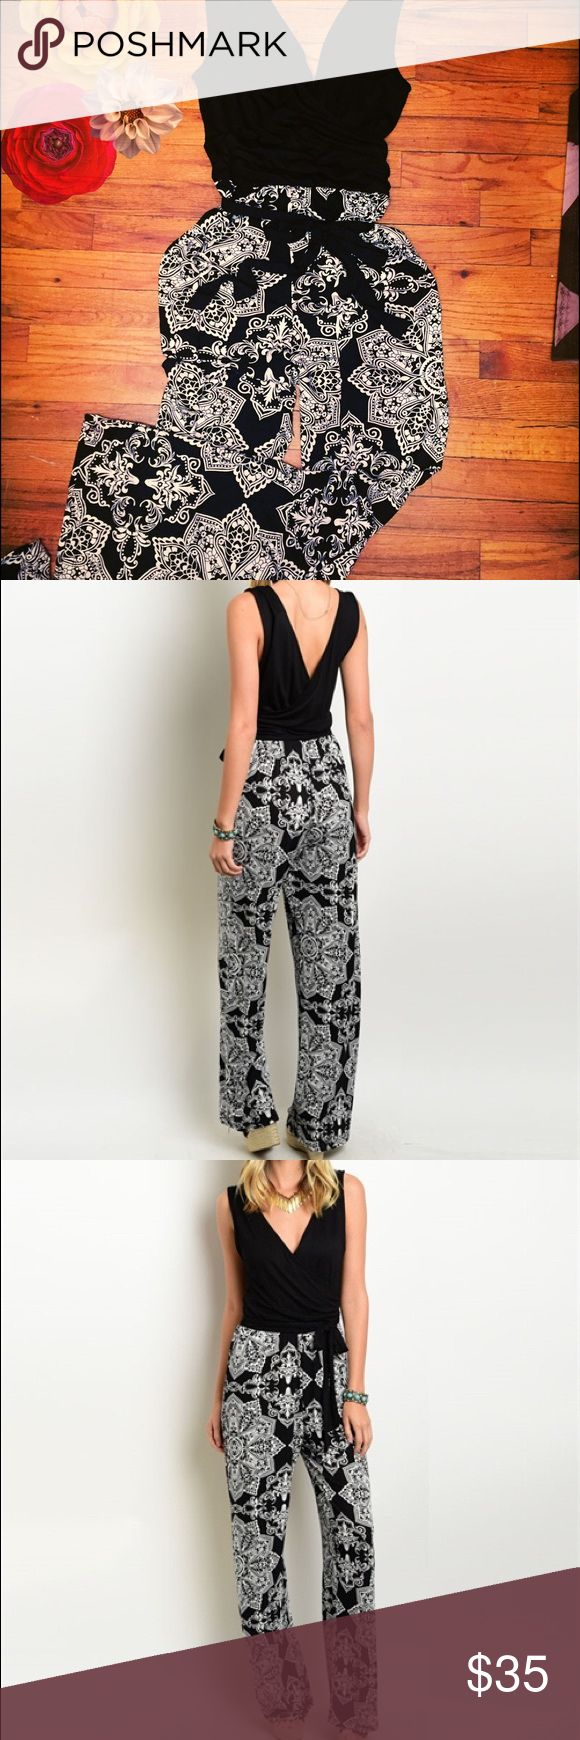 Paula Jumpsuit This gorgeous black and white designed jumpsuit is a comfy and fashionable. It features a plunging back and neckline and ties around the waist.    Fabric Content: 65% RAYON 35% VISCOSE Simply Jazzy boutique Pants Jumpsuits & Rompers